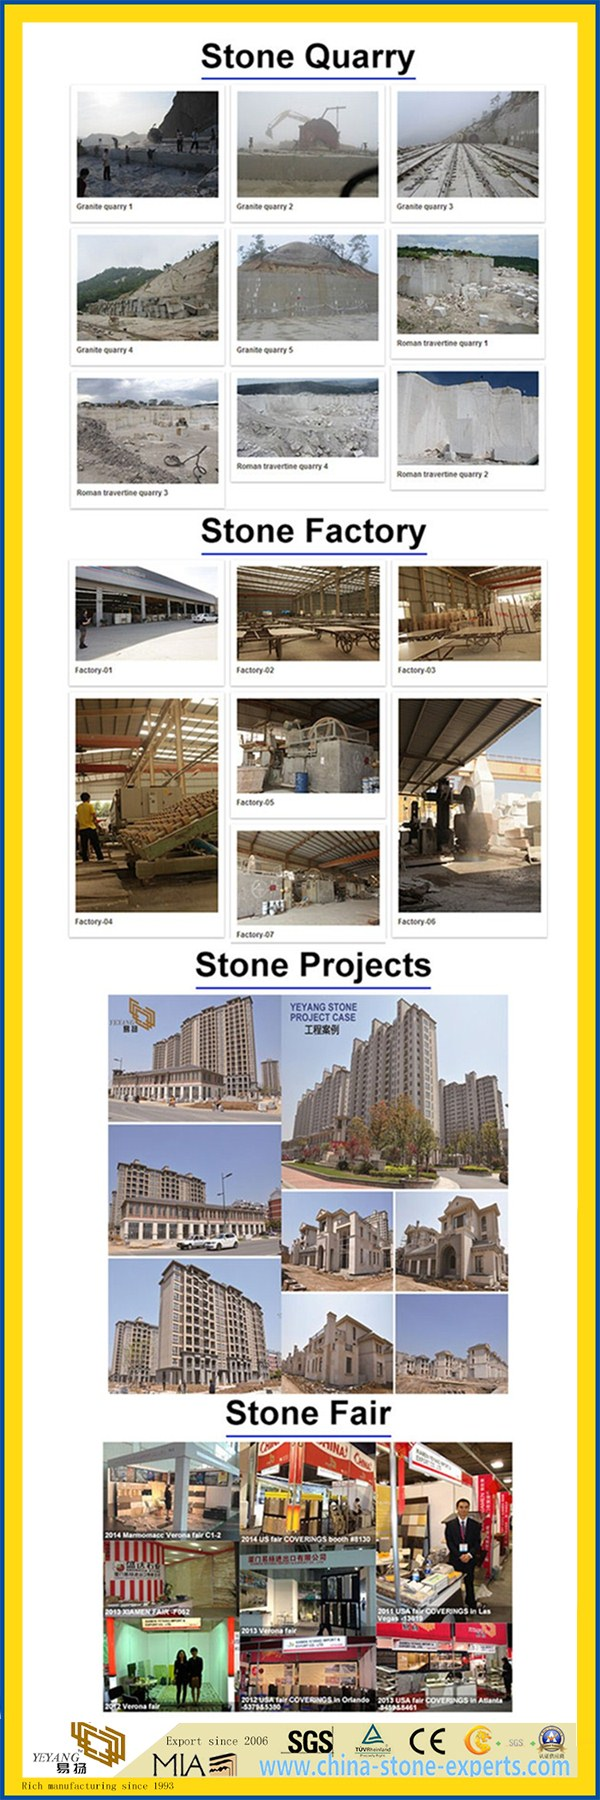 01 600Yeyang Quarry+factory+project+fair_副本_副本